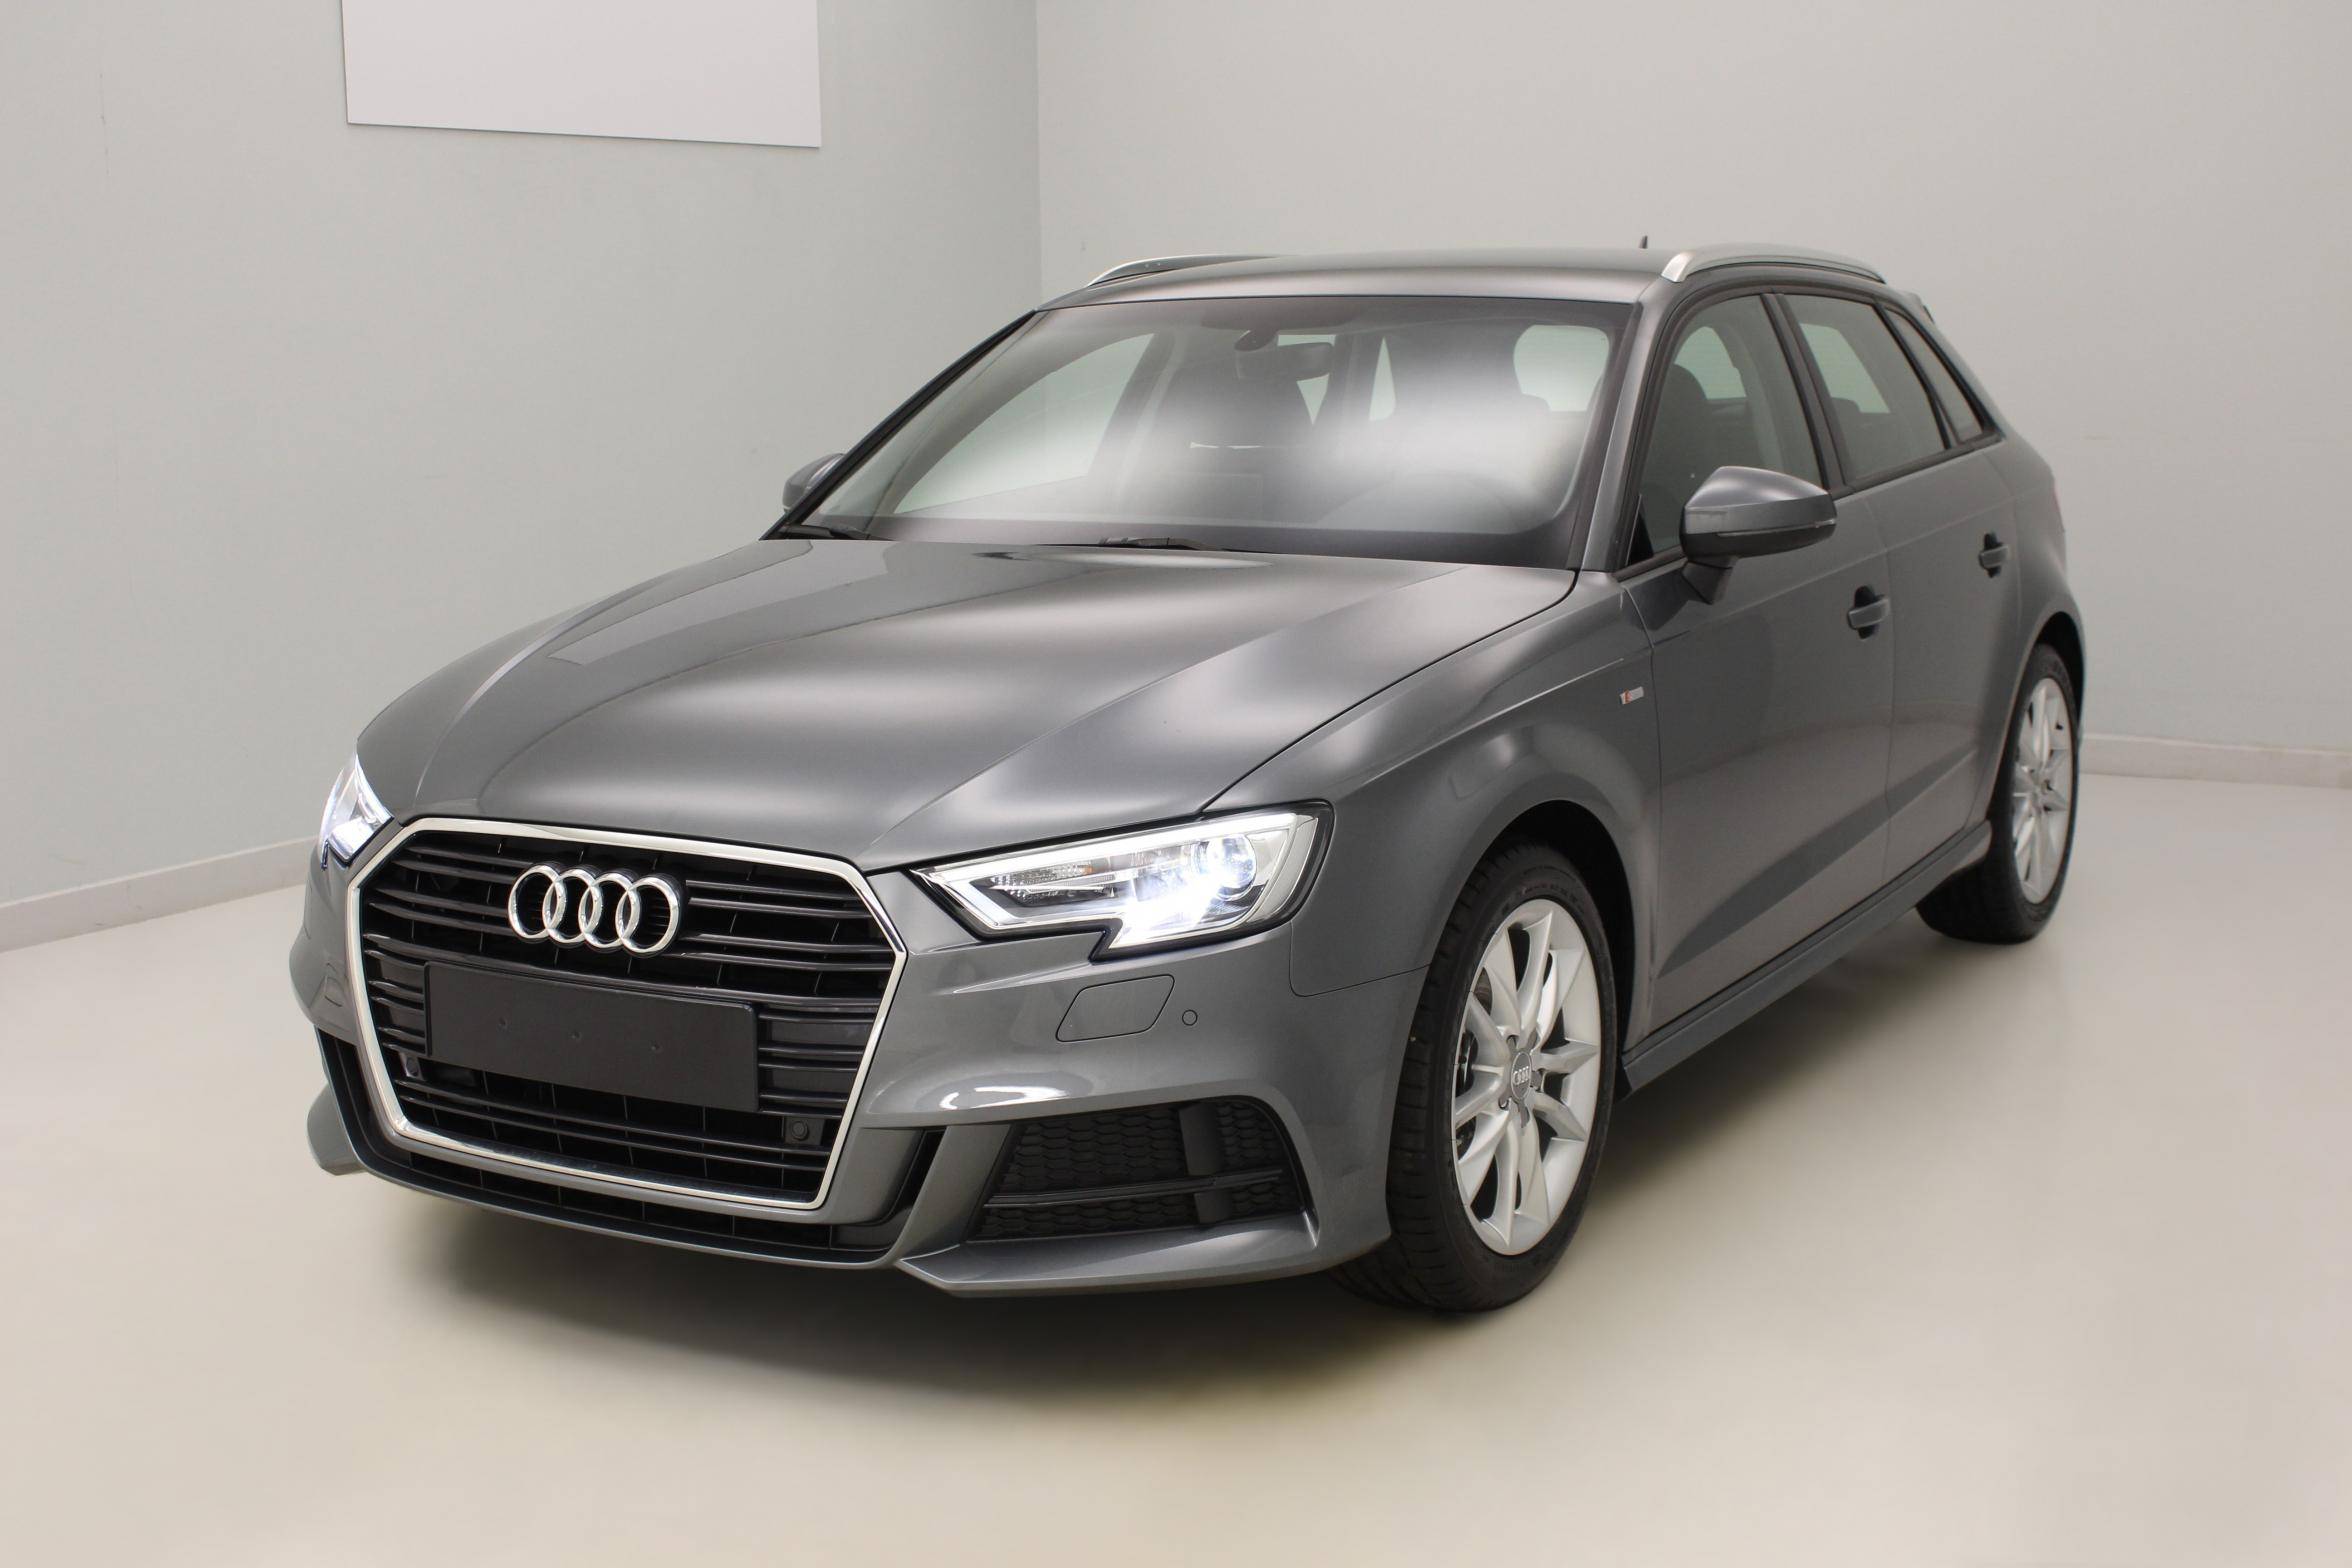 AUDI A3 Sportback Nouvelle 1.6 TDI 110 Gris Mousson  + Audi parking system plus + pack extérieur S Line avec options